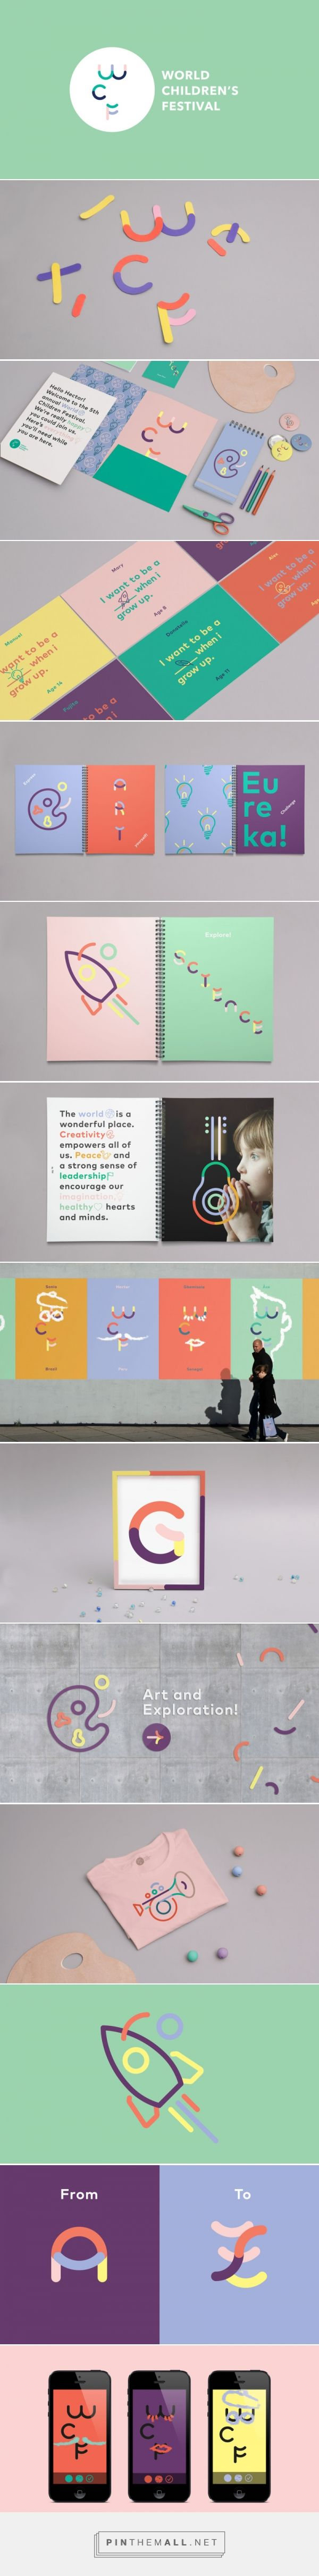 World Children's Festival Identity Concept | Trendland... - a grouped images picture - Pin Them All